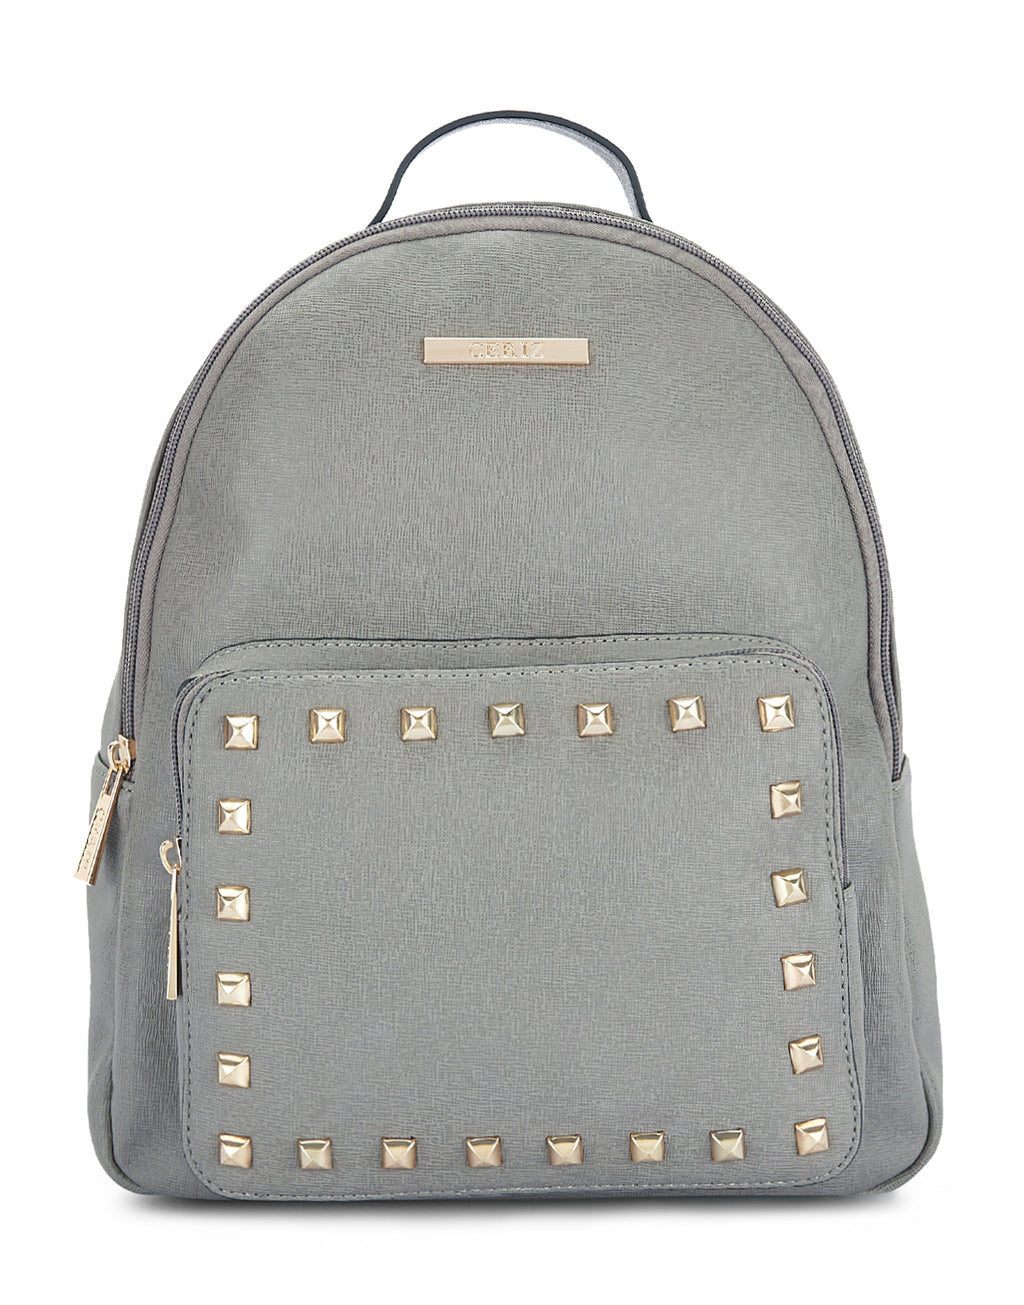 Adorlee Grey Backpack